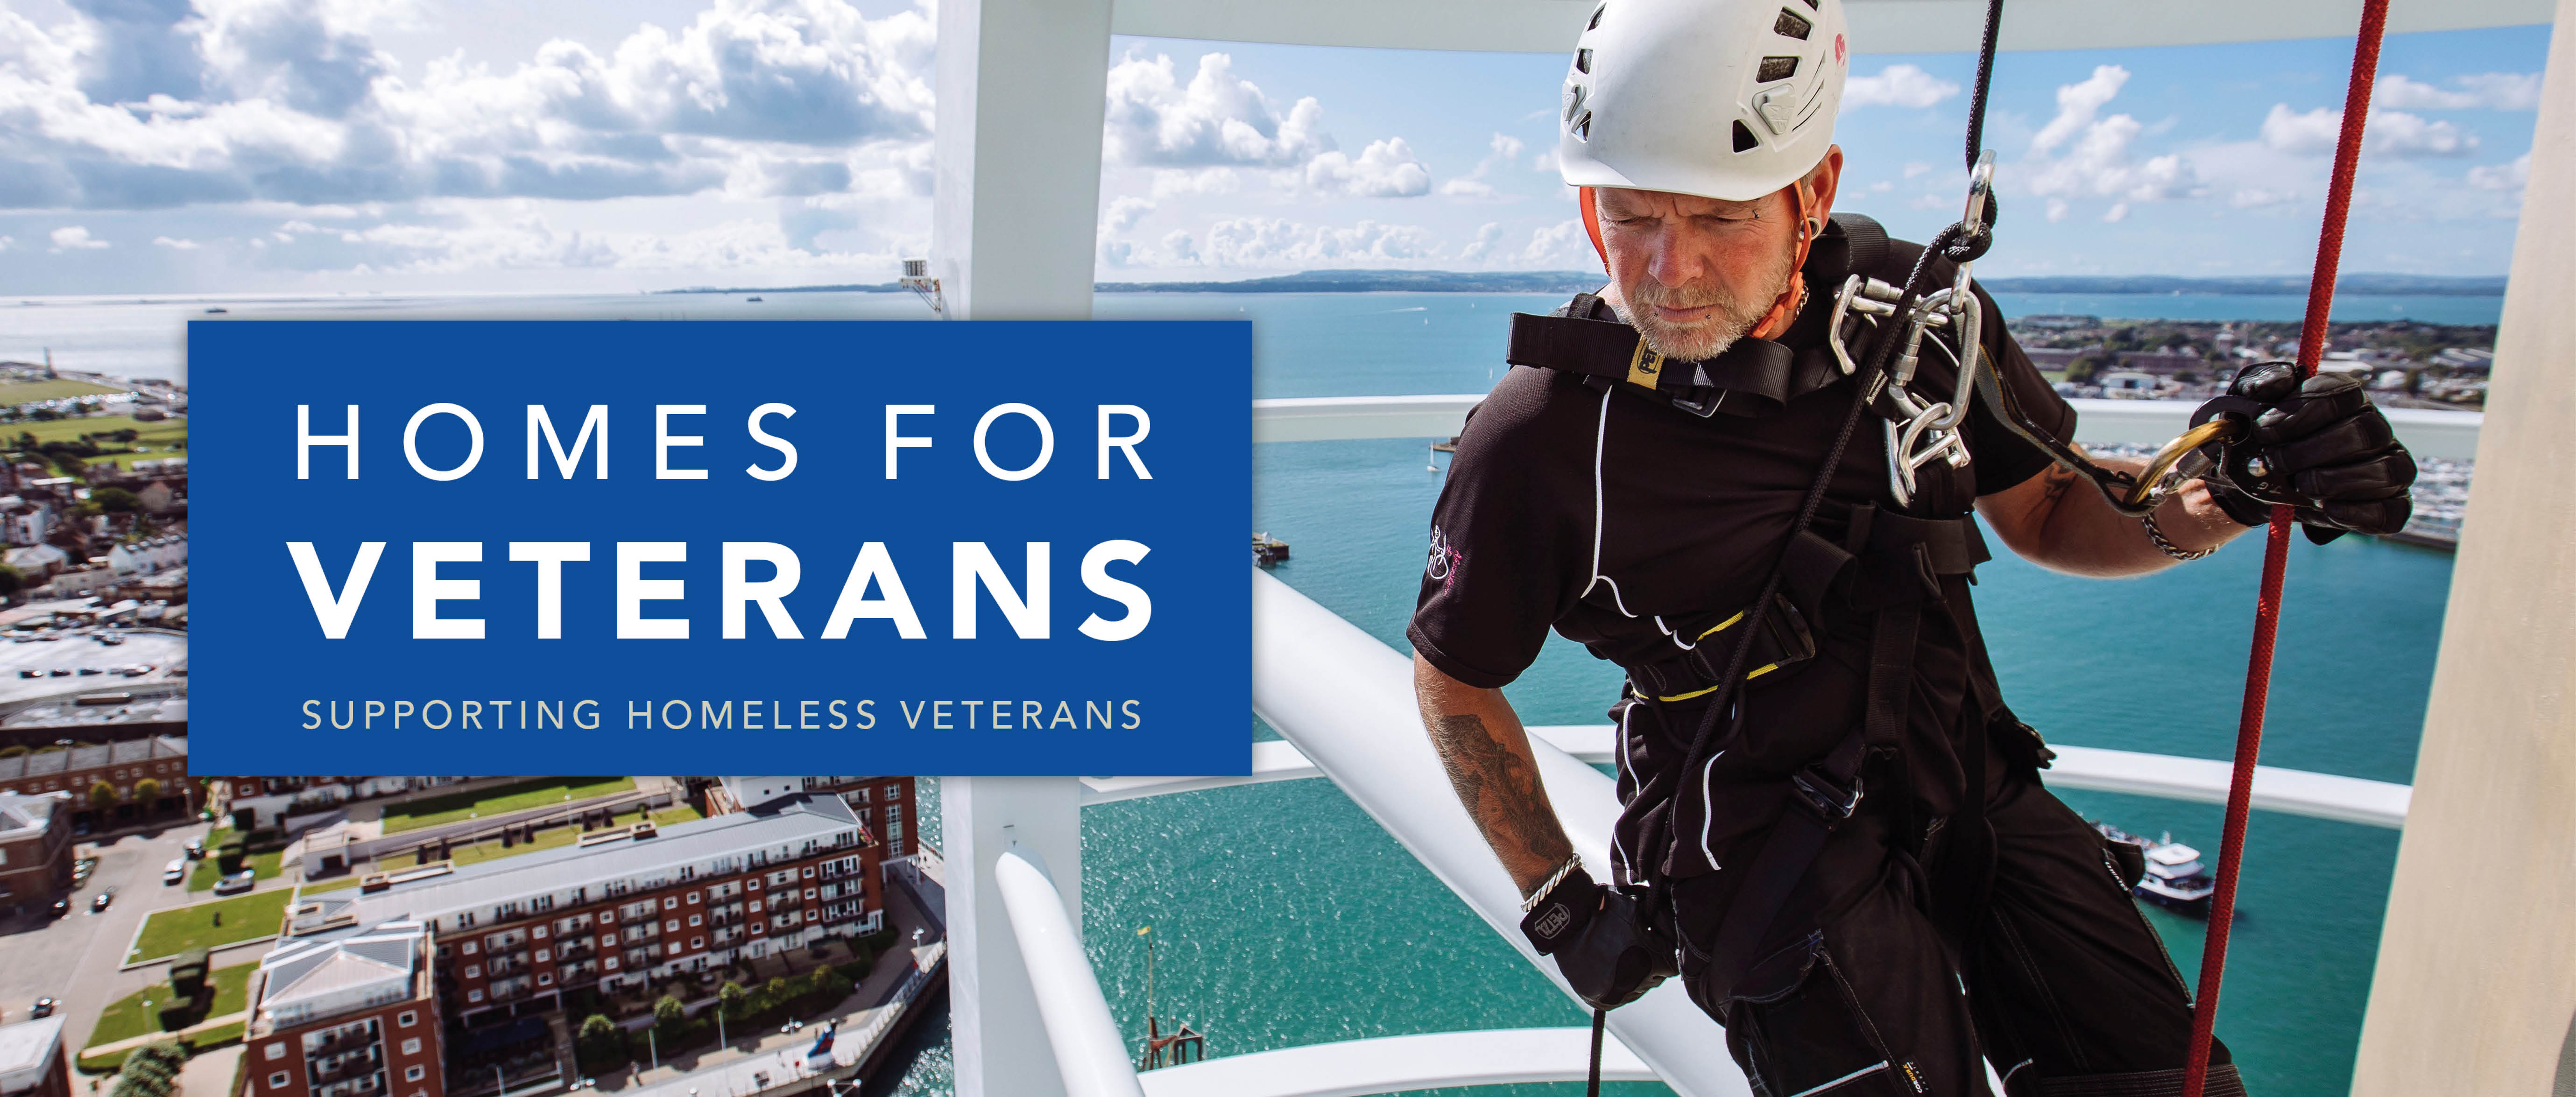 spinnaker tower abseil homes for veterans charity fundraise alabare